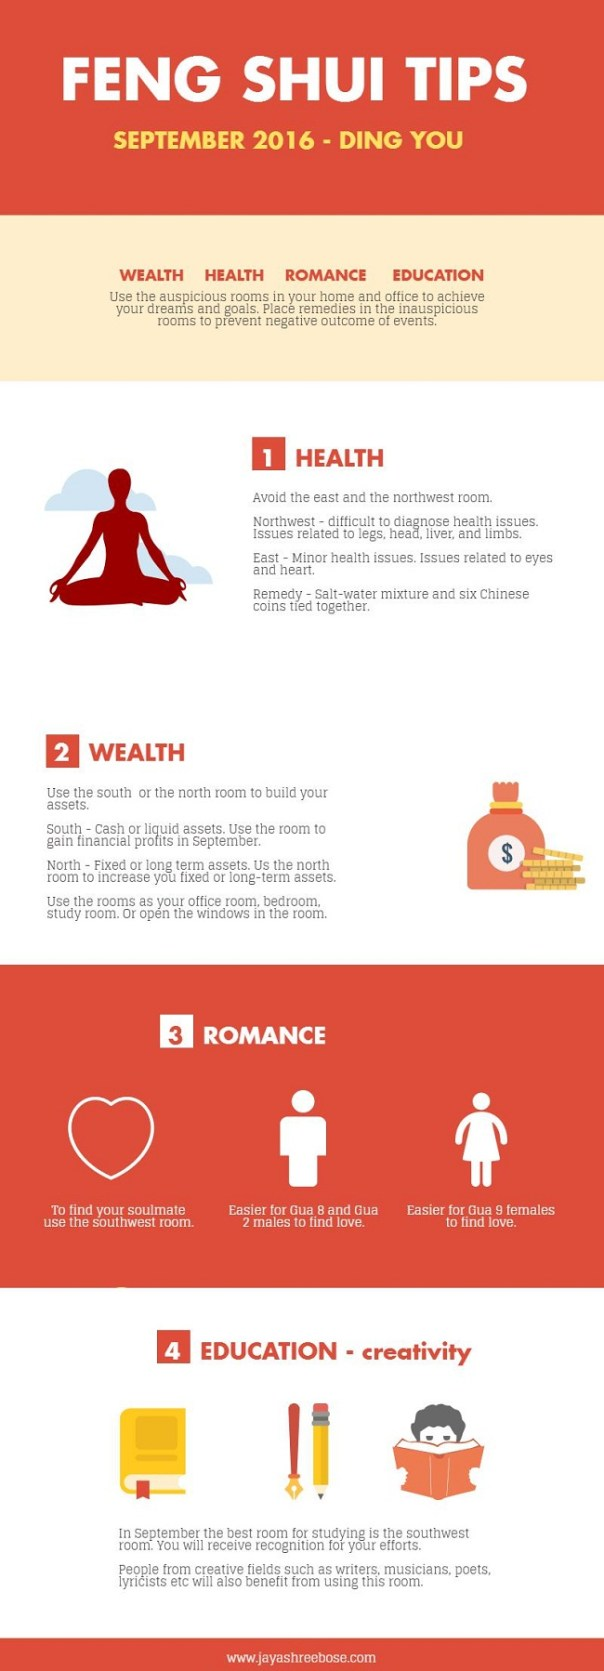 feng shui tips sept2016 - infographic